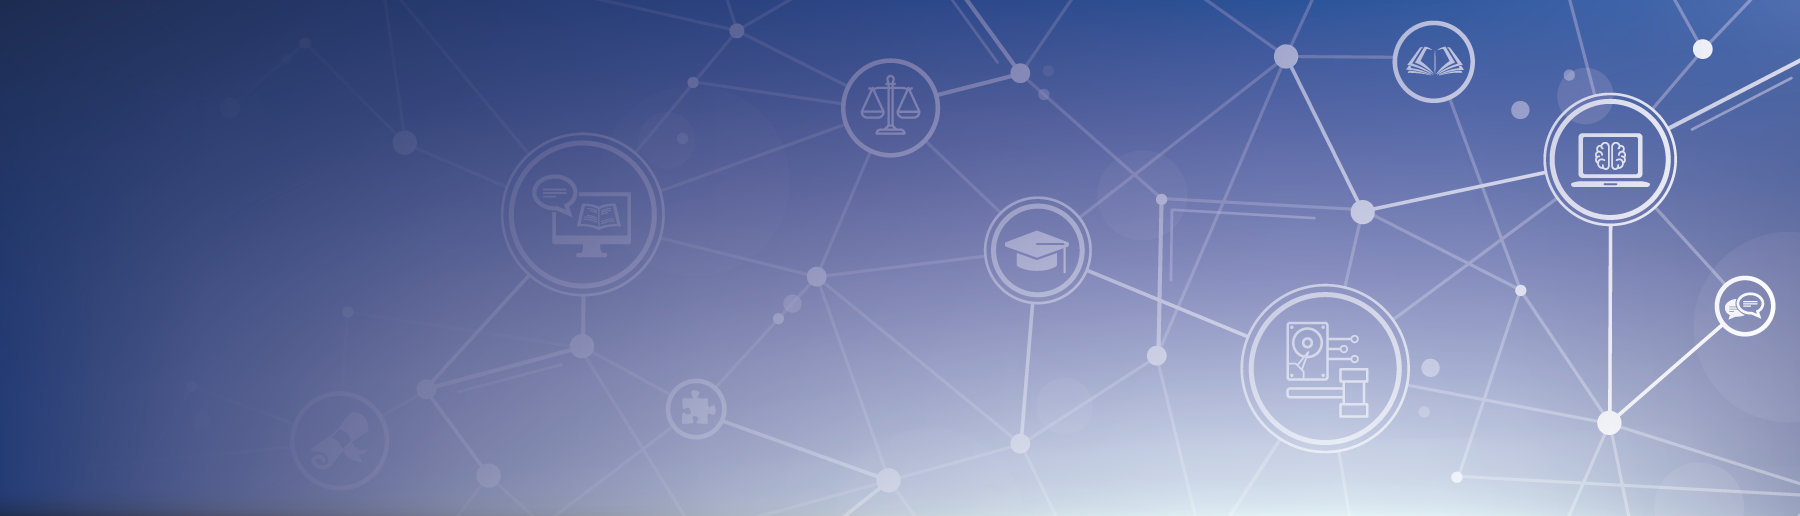 Live Webinar: What Lawyers Must Know About Technology to Avoid Losing Clients or Their License